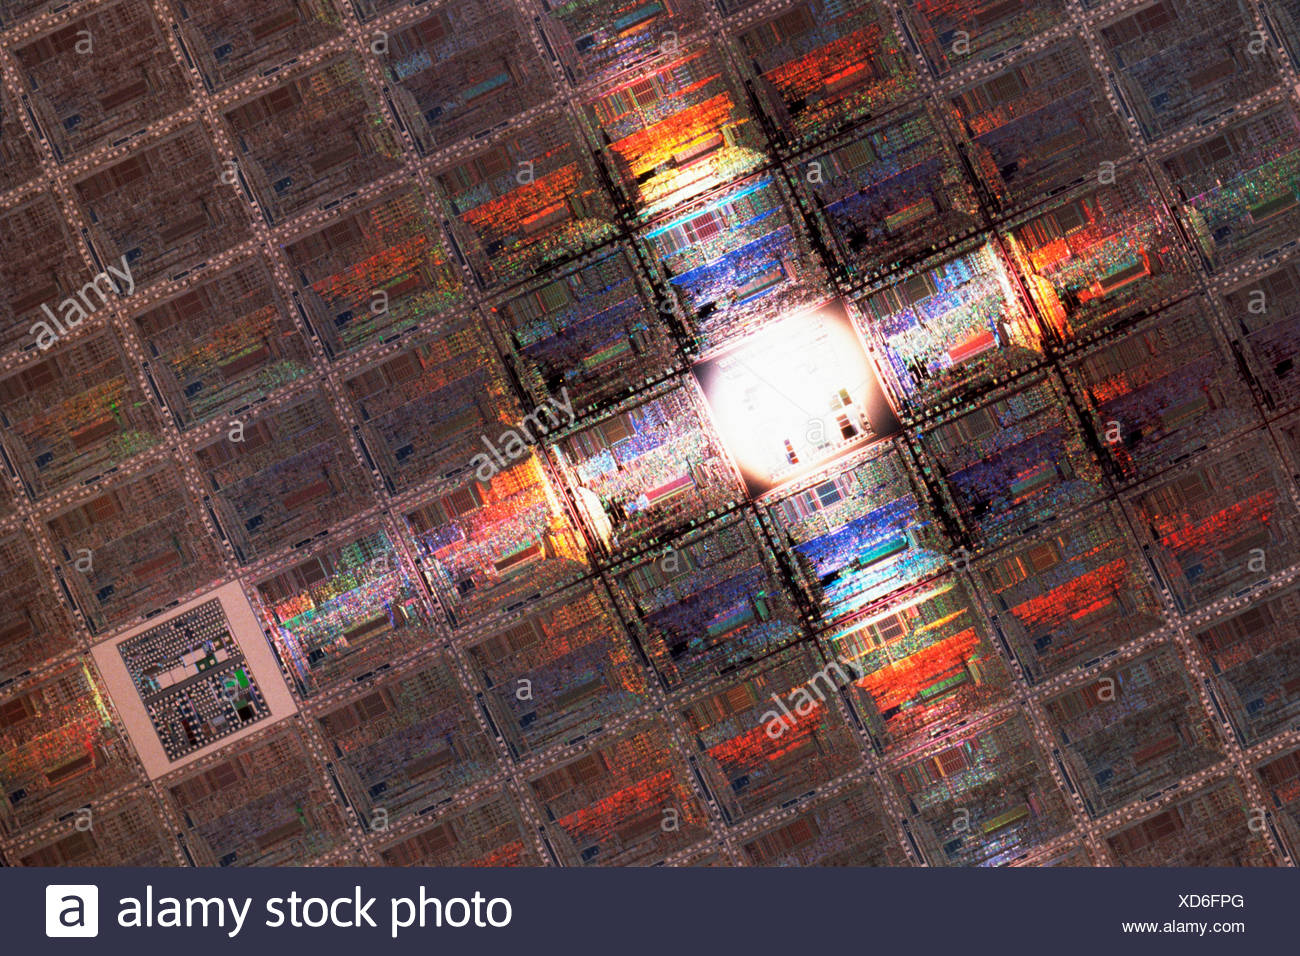 History Of Integrated Circuit Quality Electronic Wafers Stock Photos Images Alamy A Wafer Silicon Etched Microprocessor Circuits Control Test Appears Lower Right